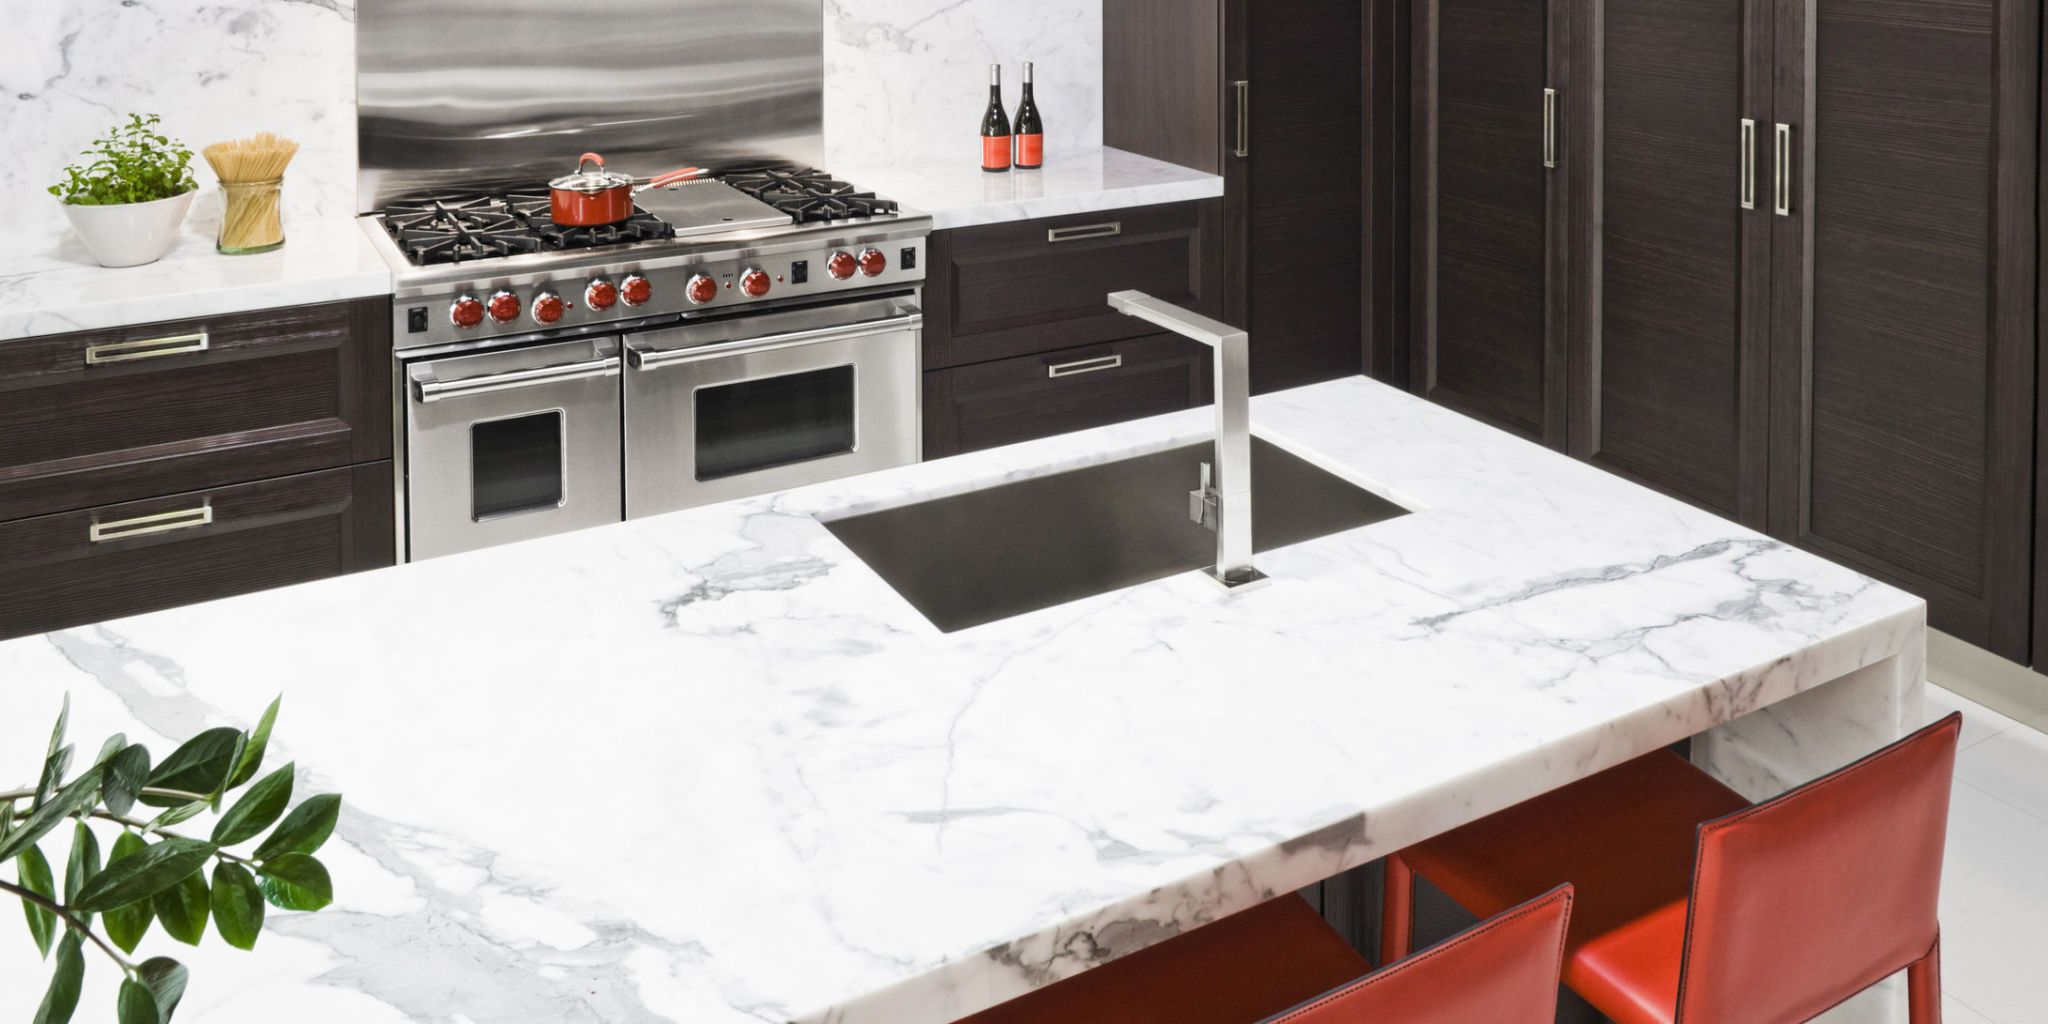 Superb Marble Countertop